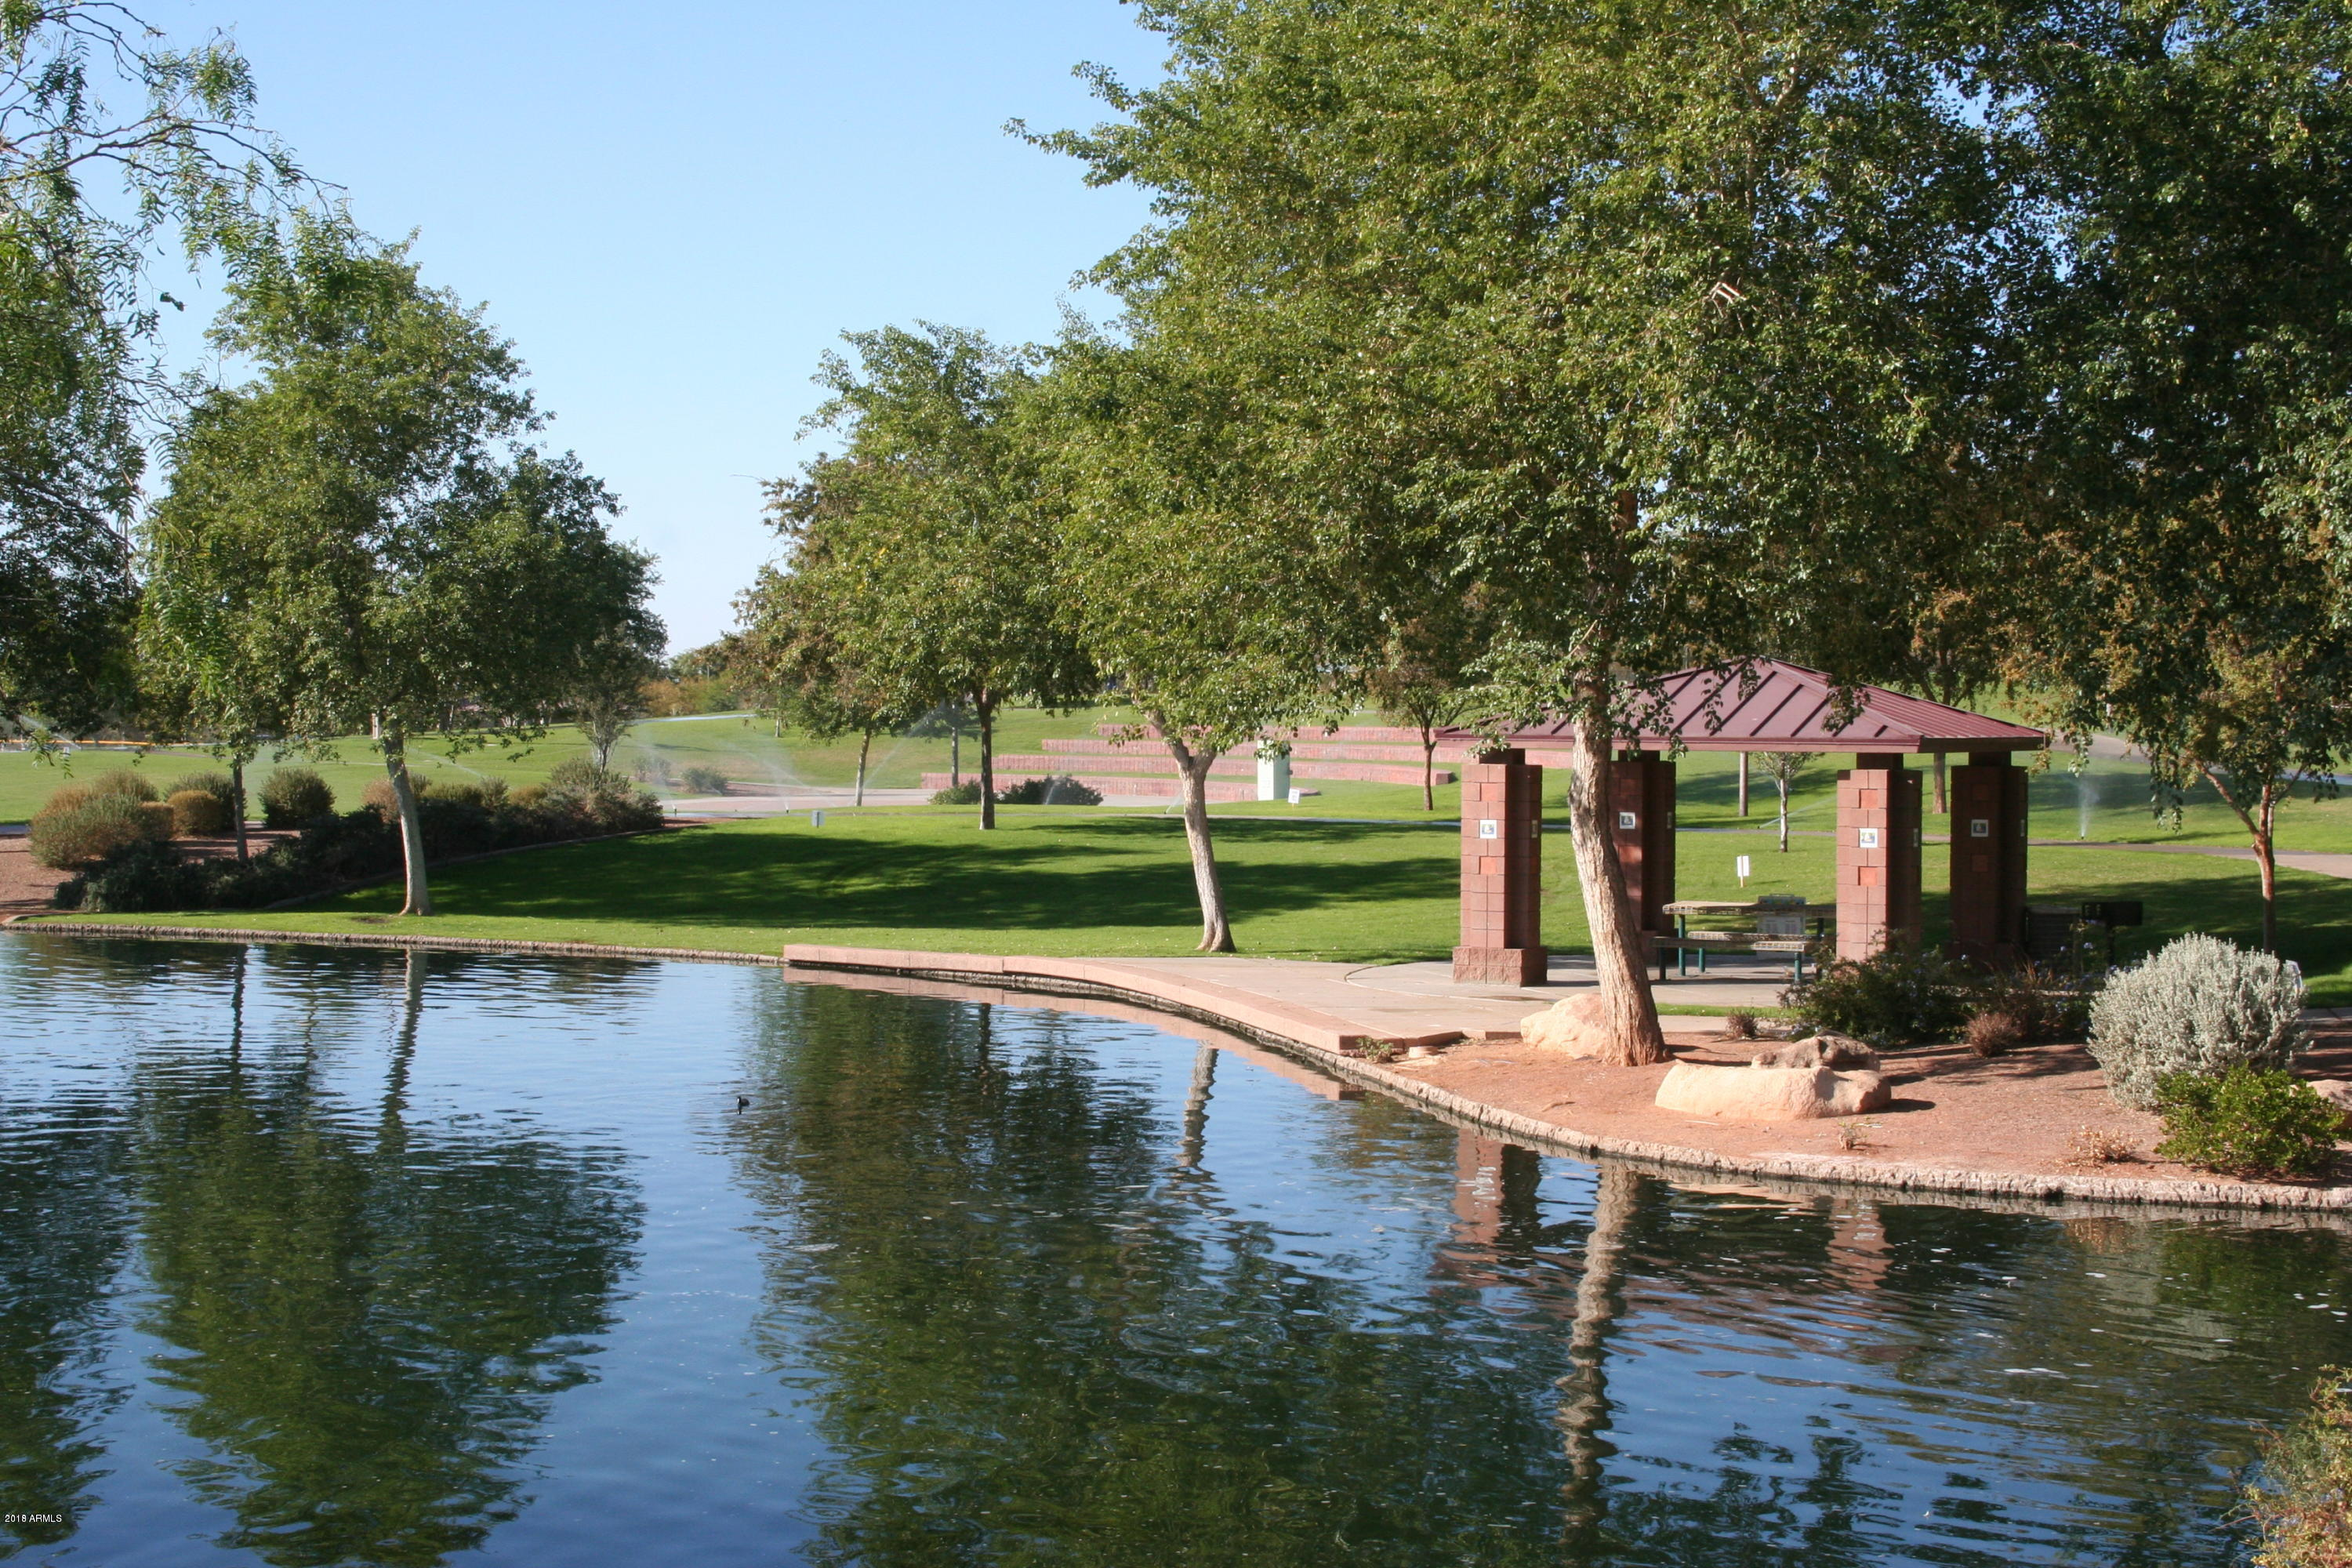 MLS 5812369 1902 W MUIRFIELD Court, Anthem, AZ 85086 Anthem AZ Cul-De-Sac